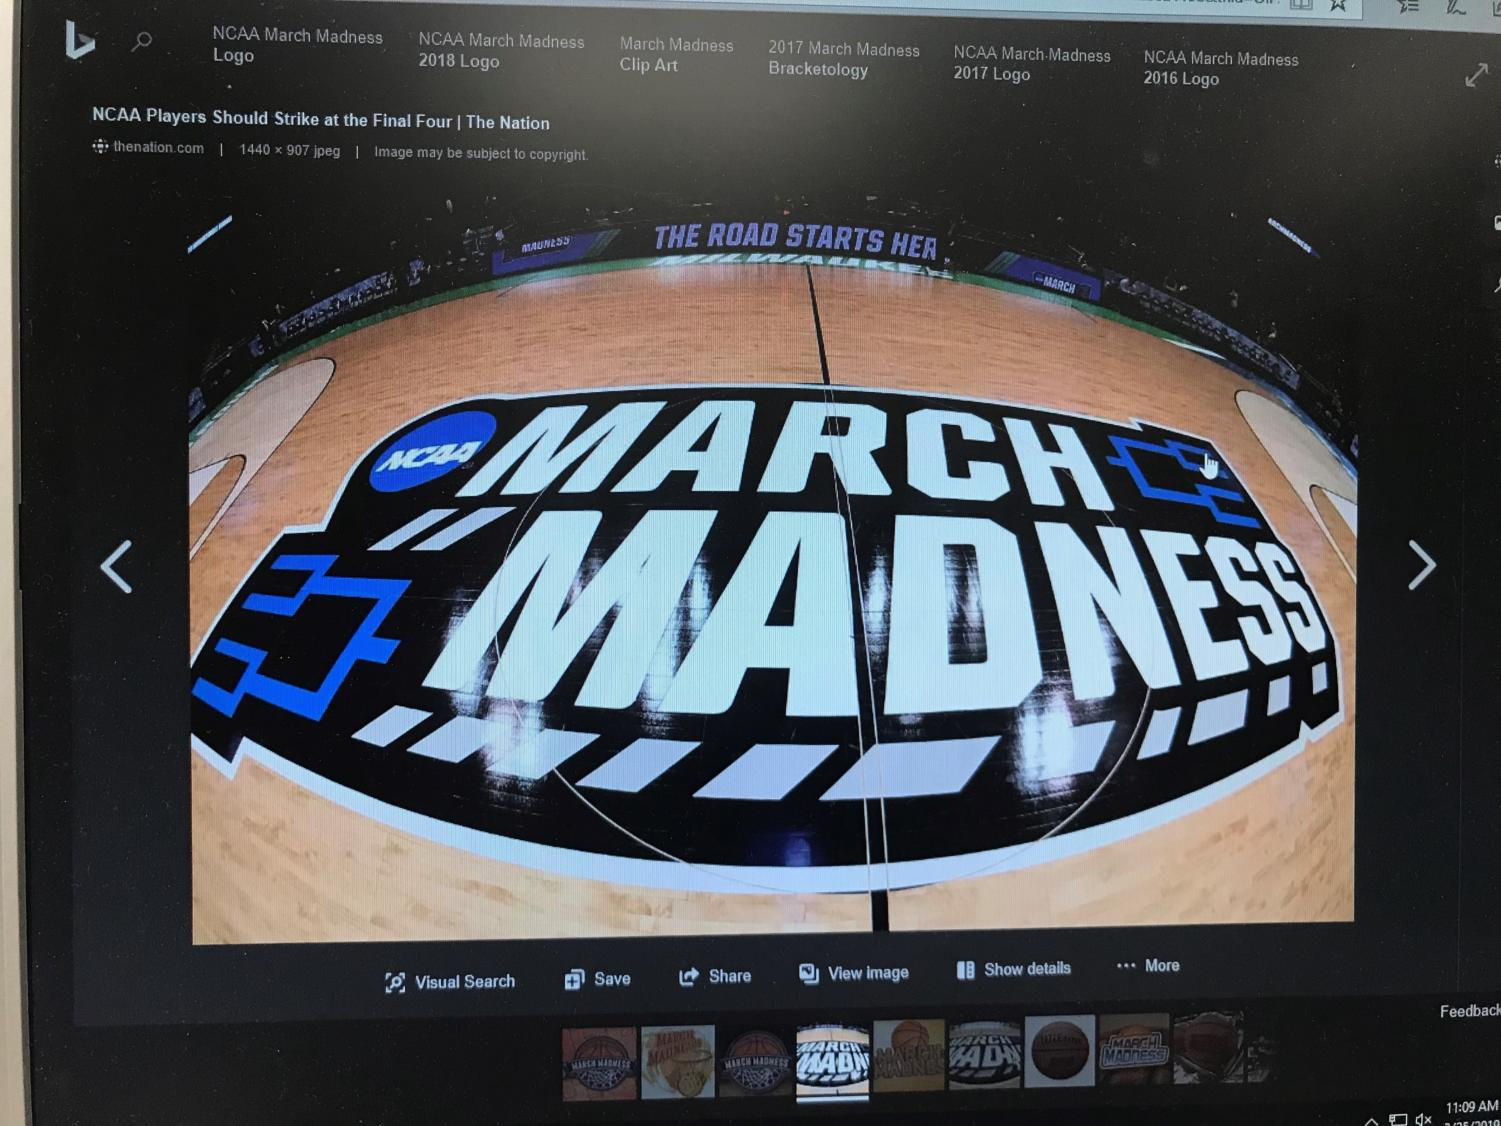 March Madness, the name given to the Men's basketball tournament in March, includes 64 teams from across the country.